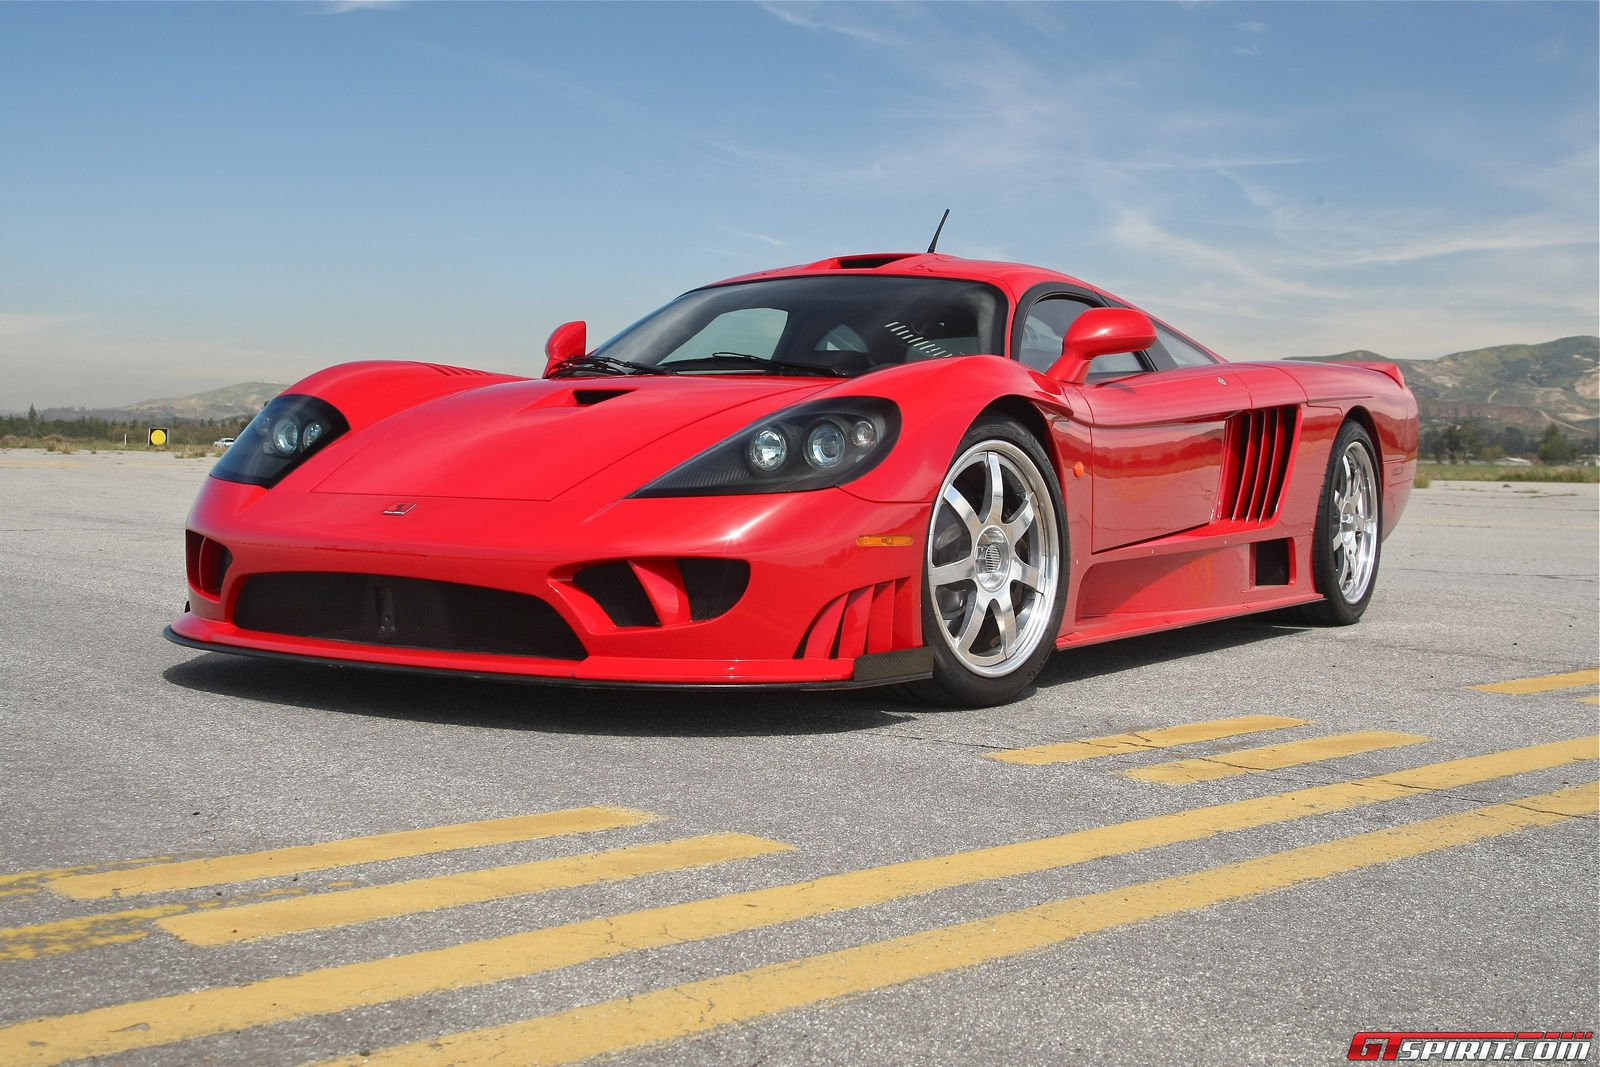 Saleen S7 For Sale >> Saleen S7 Heading to Beijing Motor Show 2014 - GTspirit